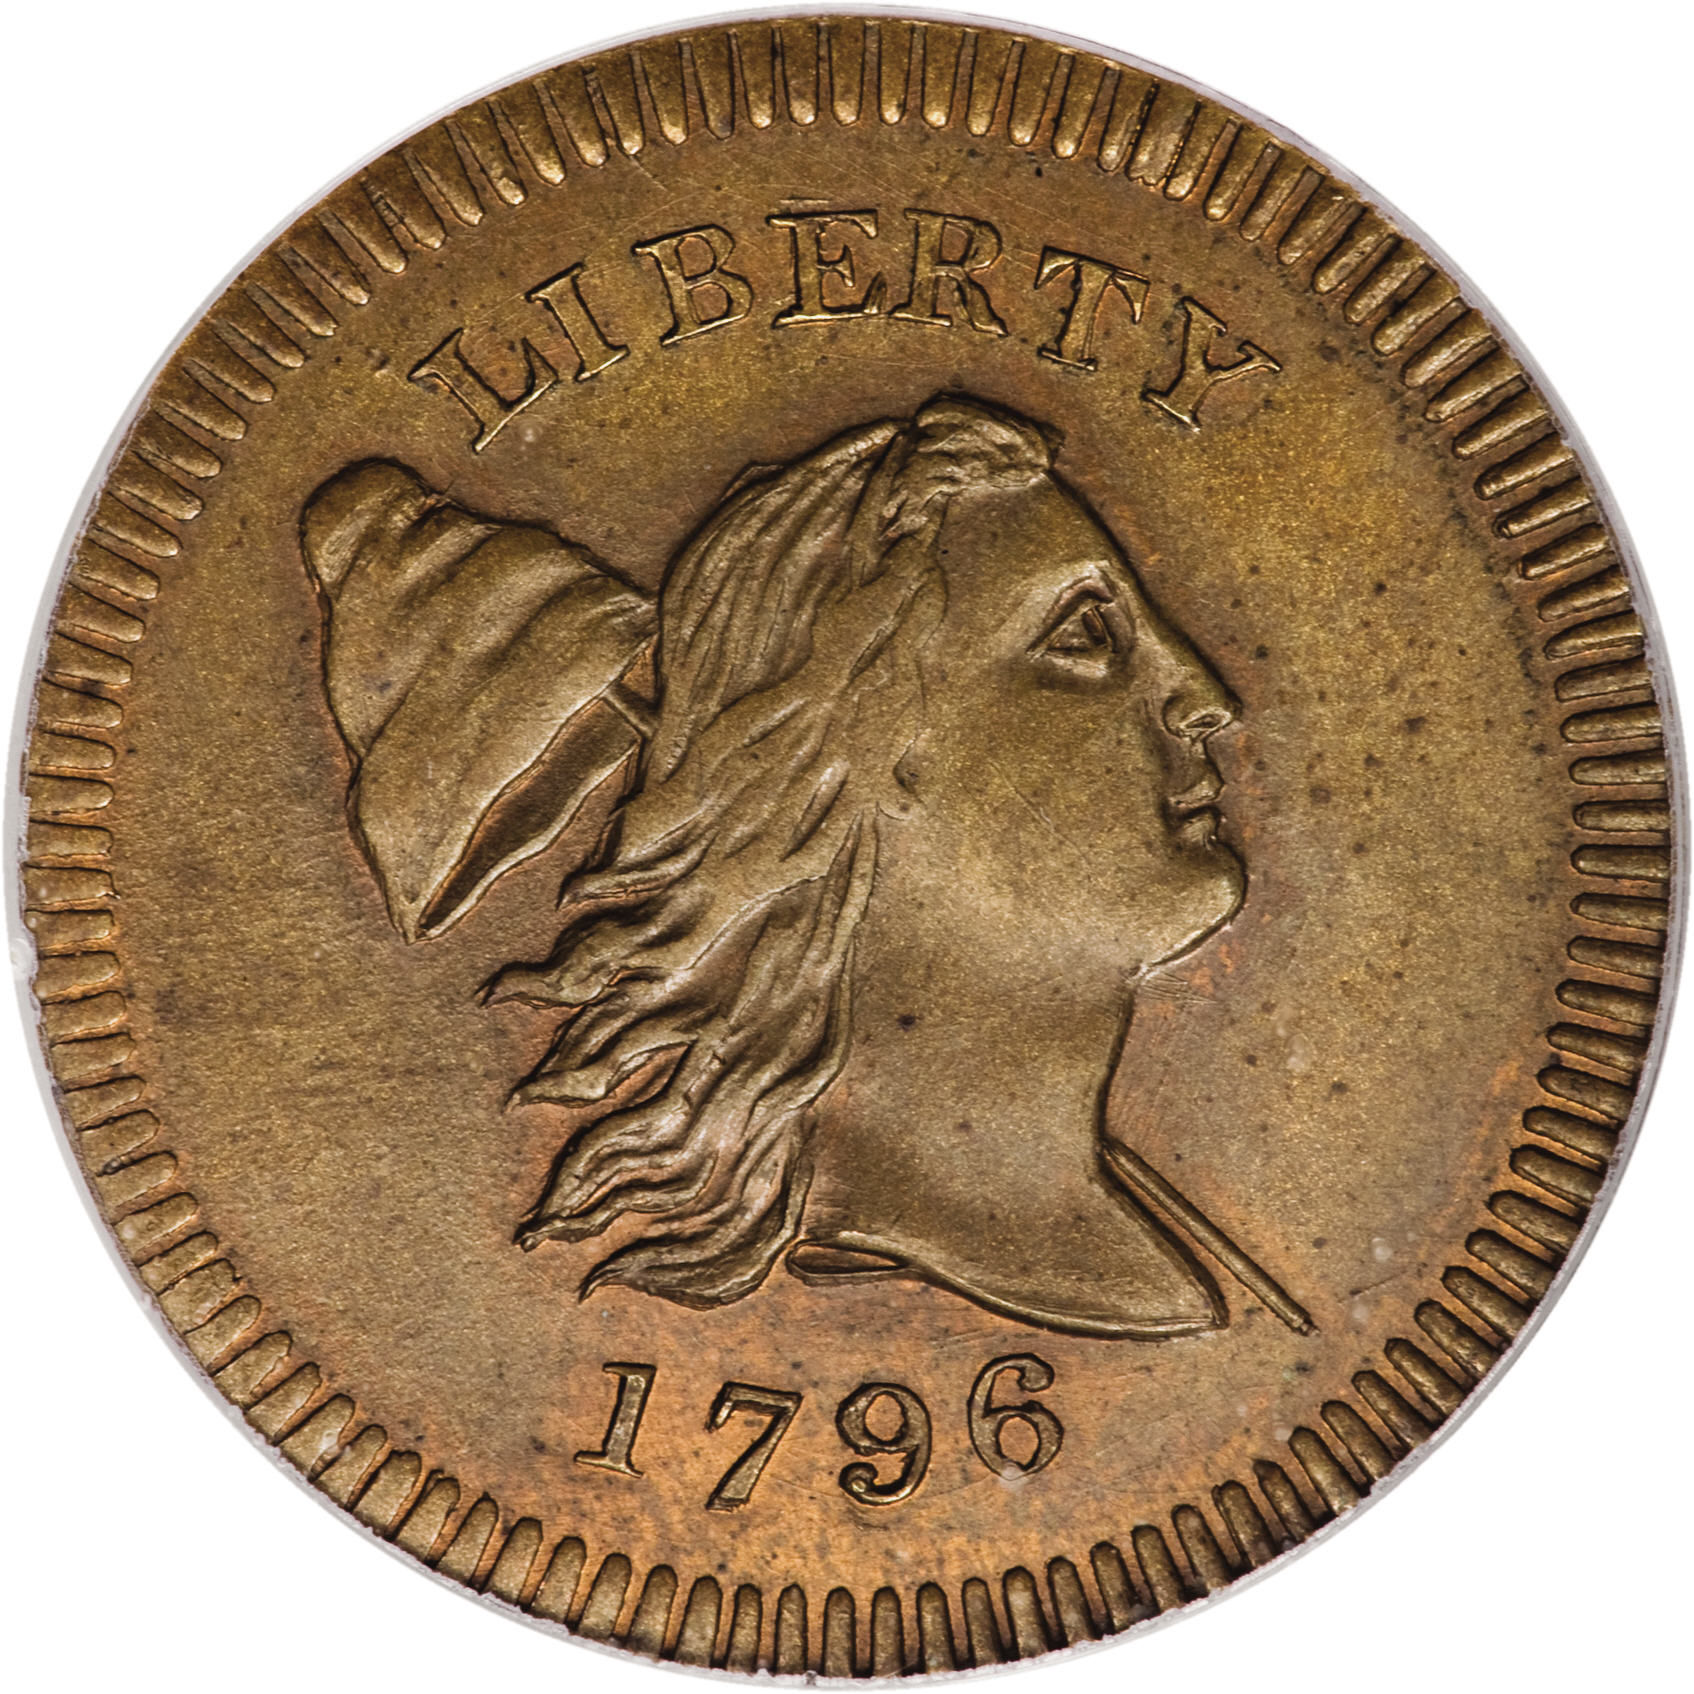 PCGS MS-66 brown 1796 Edwards copy half cent, from Heritage Signature Auction at 2008 Baltimore ANA show. Obverse is shown here.